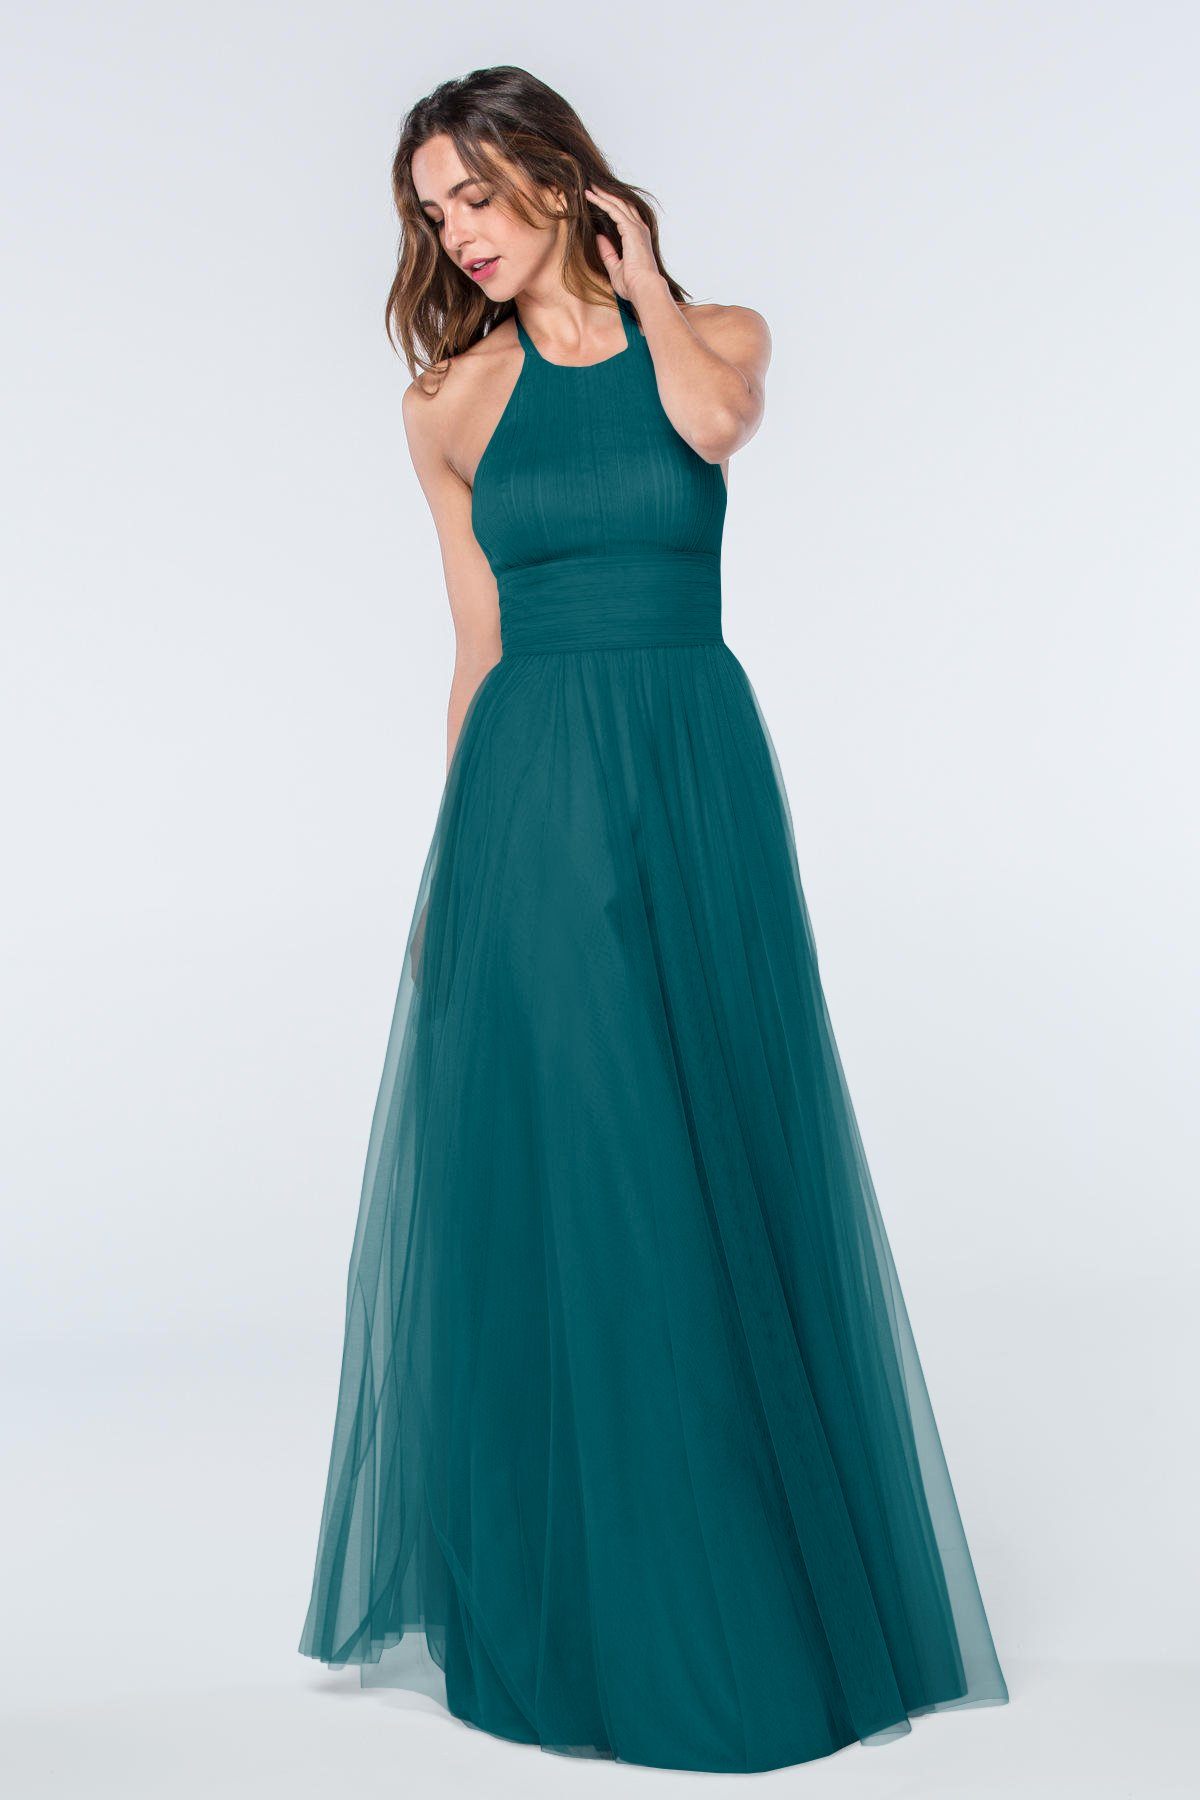 Viridian long bridesmaid dresses 2017